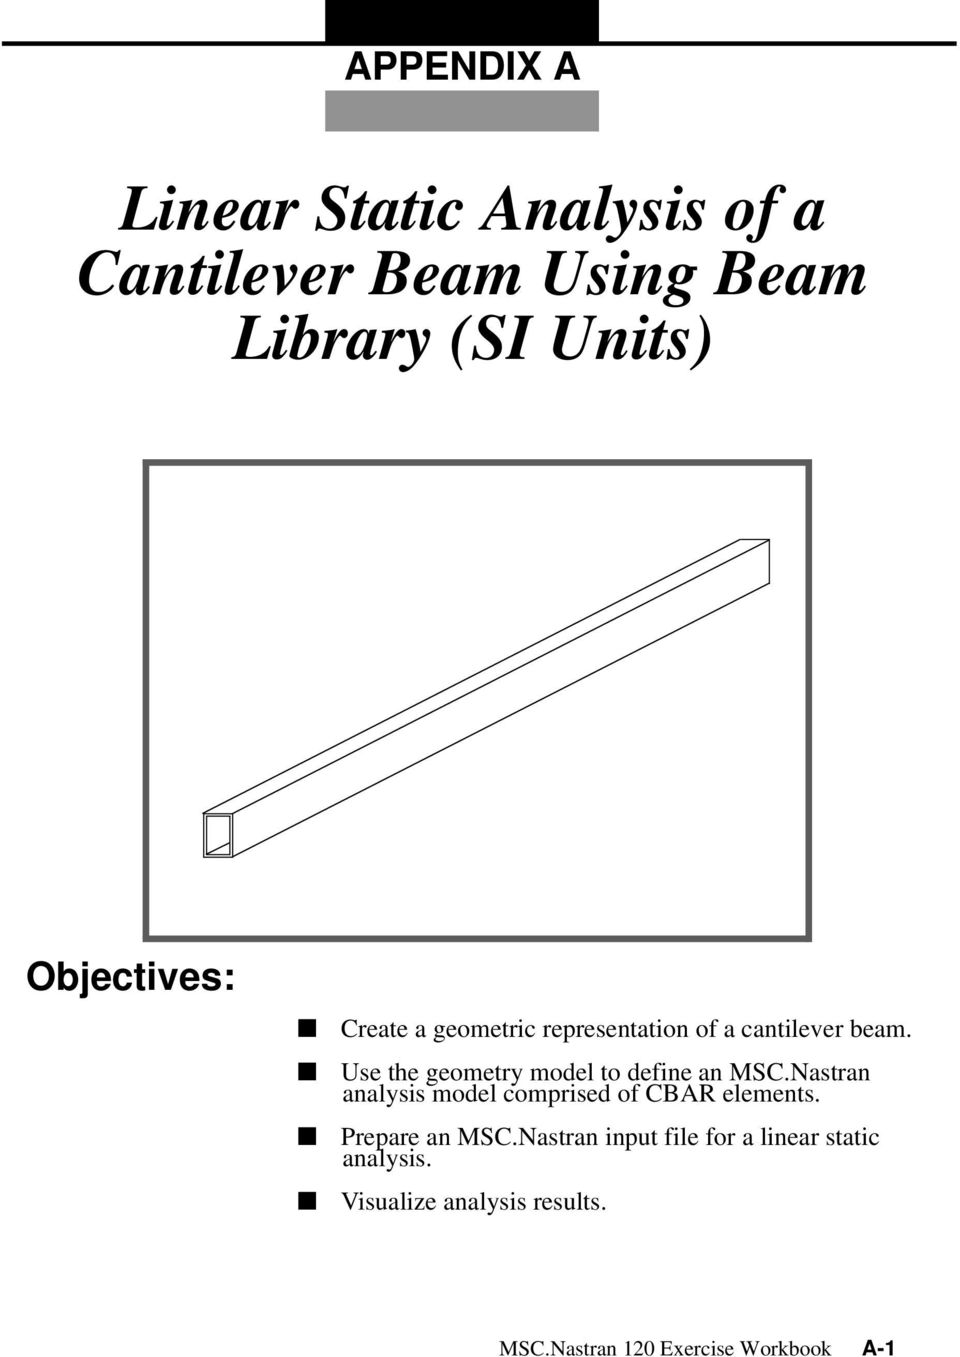 Linear Static Analysis Of A Cantilever Beam Using Library Si Diagram Triangular Use The Geometry Model To Define An Mscnastran Comprised Cbar Elements